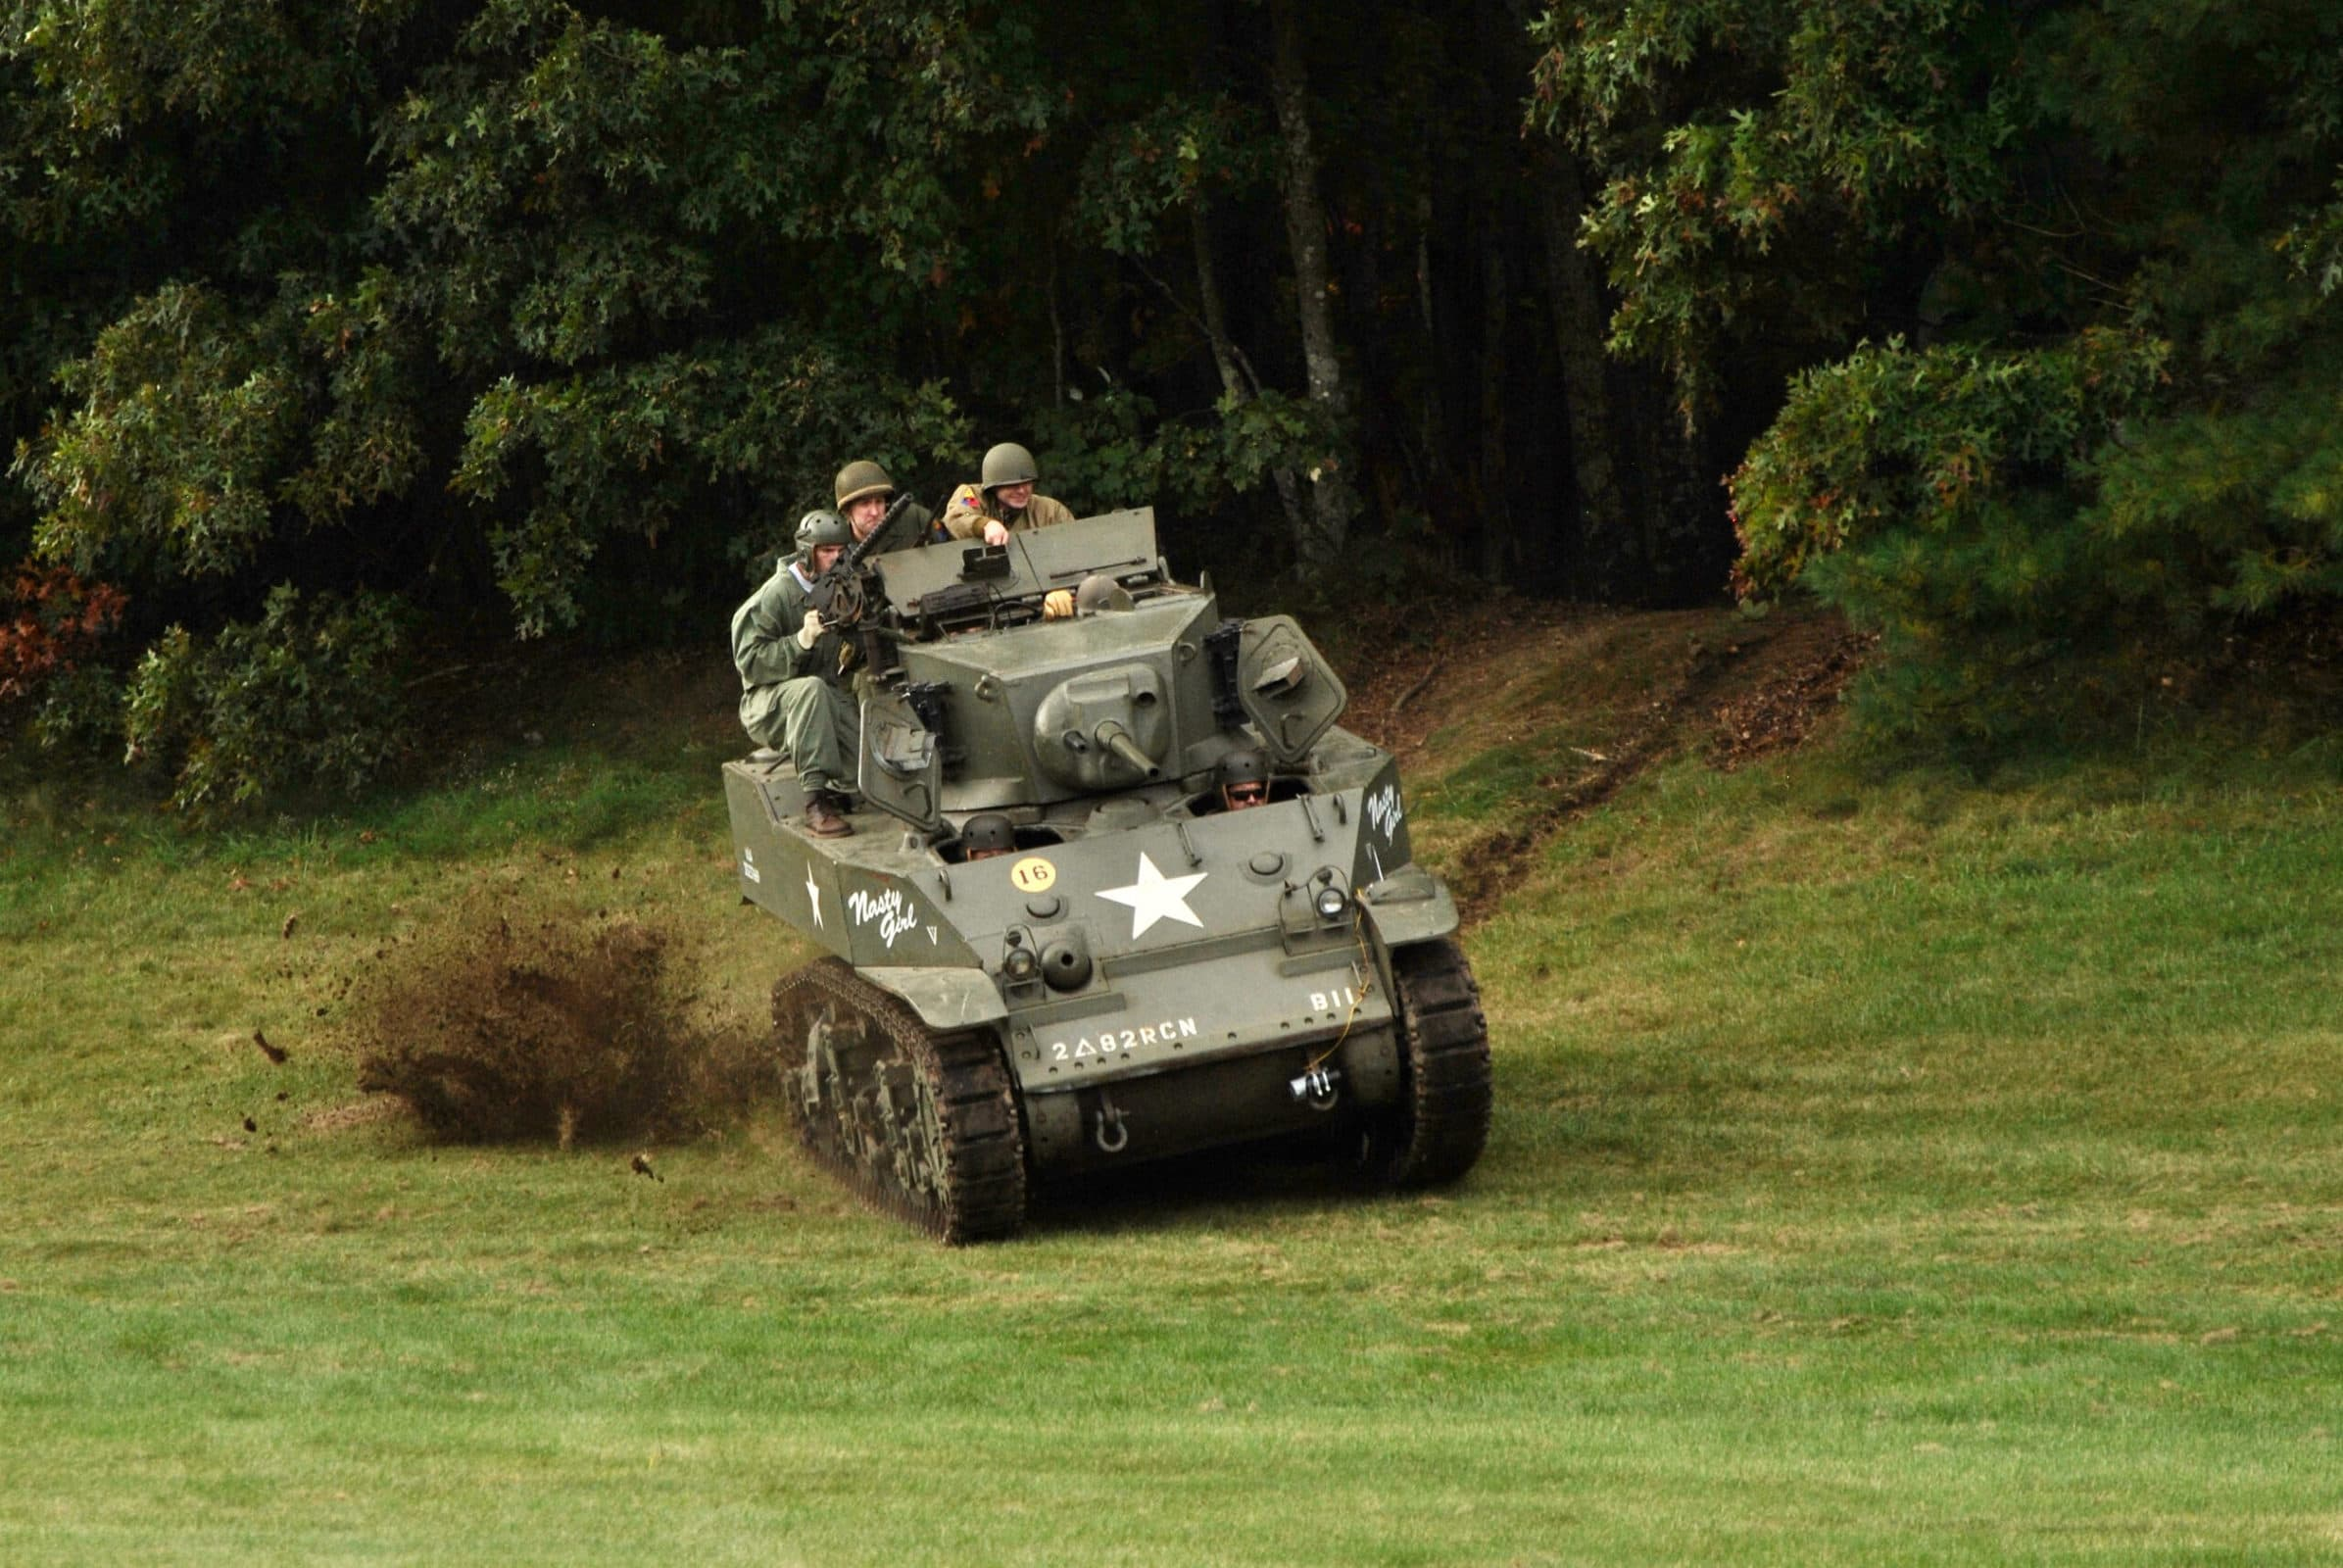 A tank tears out of the woods on the grounds of the American Heritage Museum in Hudson during this year's Battle for the Airfield World War II reenactment.